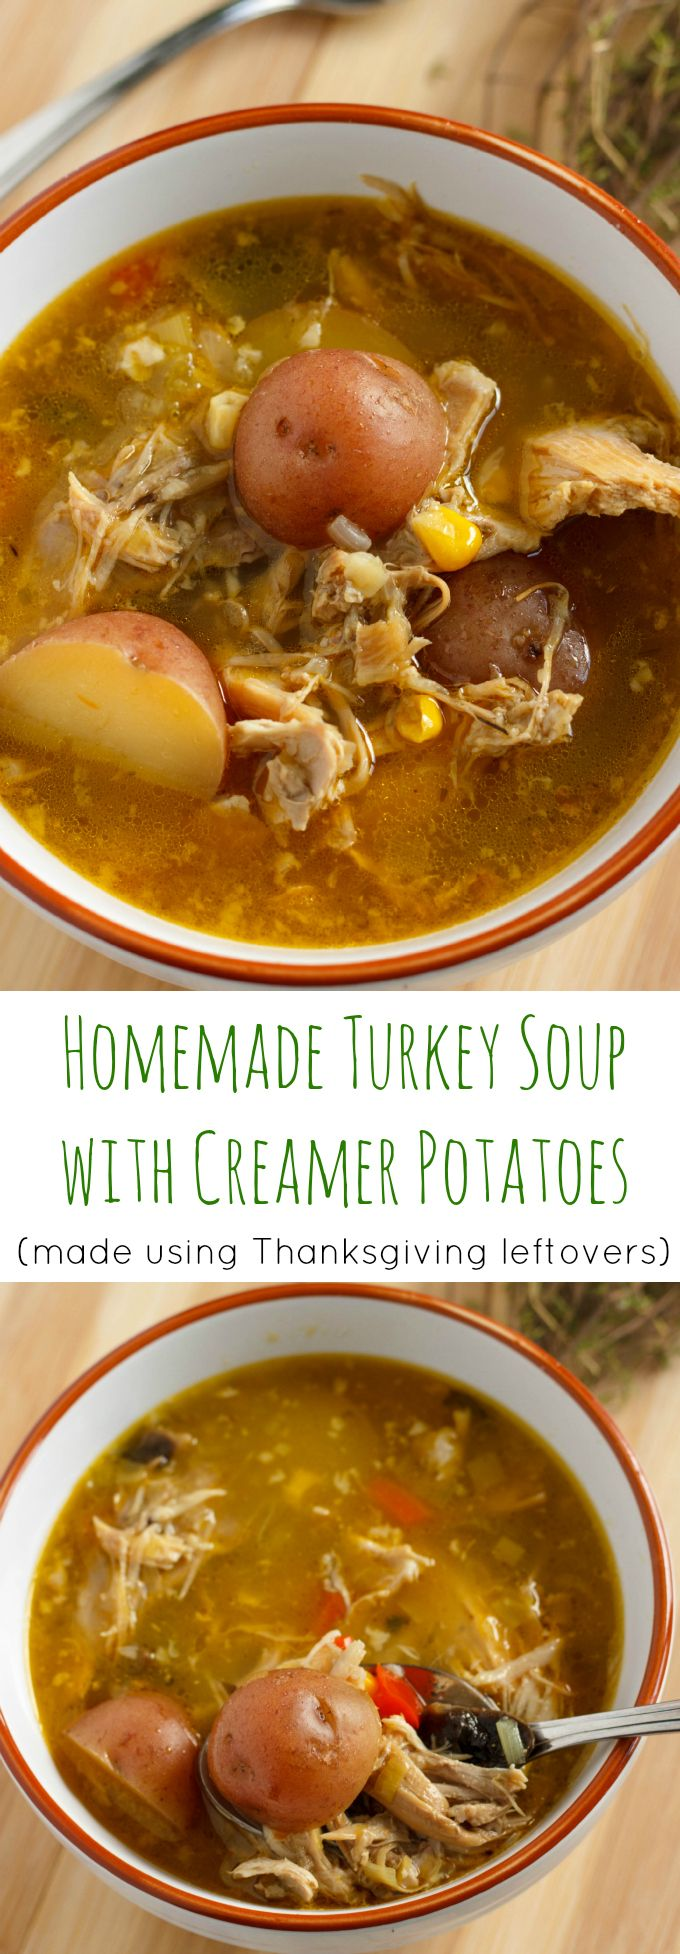 34 best heart healthy images on pinterest health foods healthy homemade turkey soup using leftover turkey carcass chilli recipespotato soup recipeshealthy sisterspd